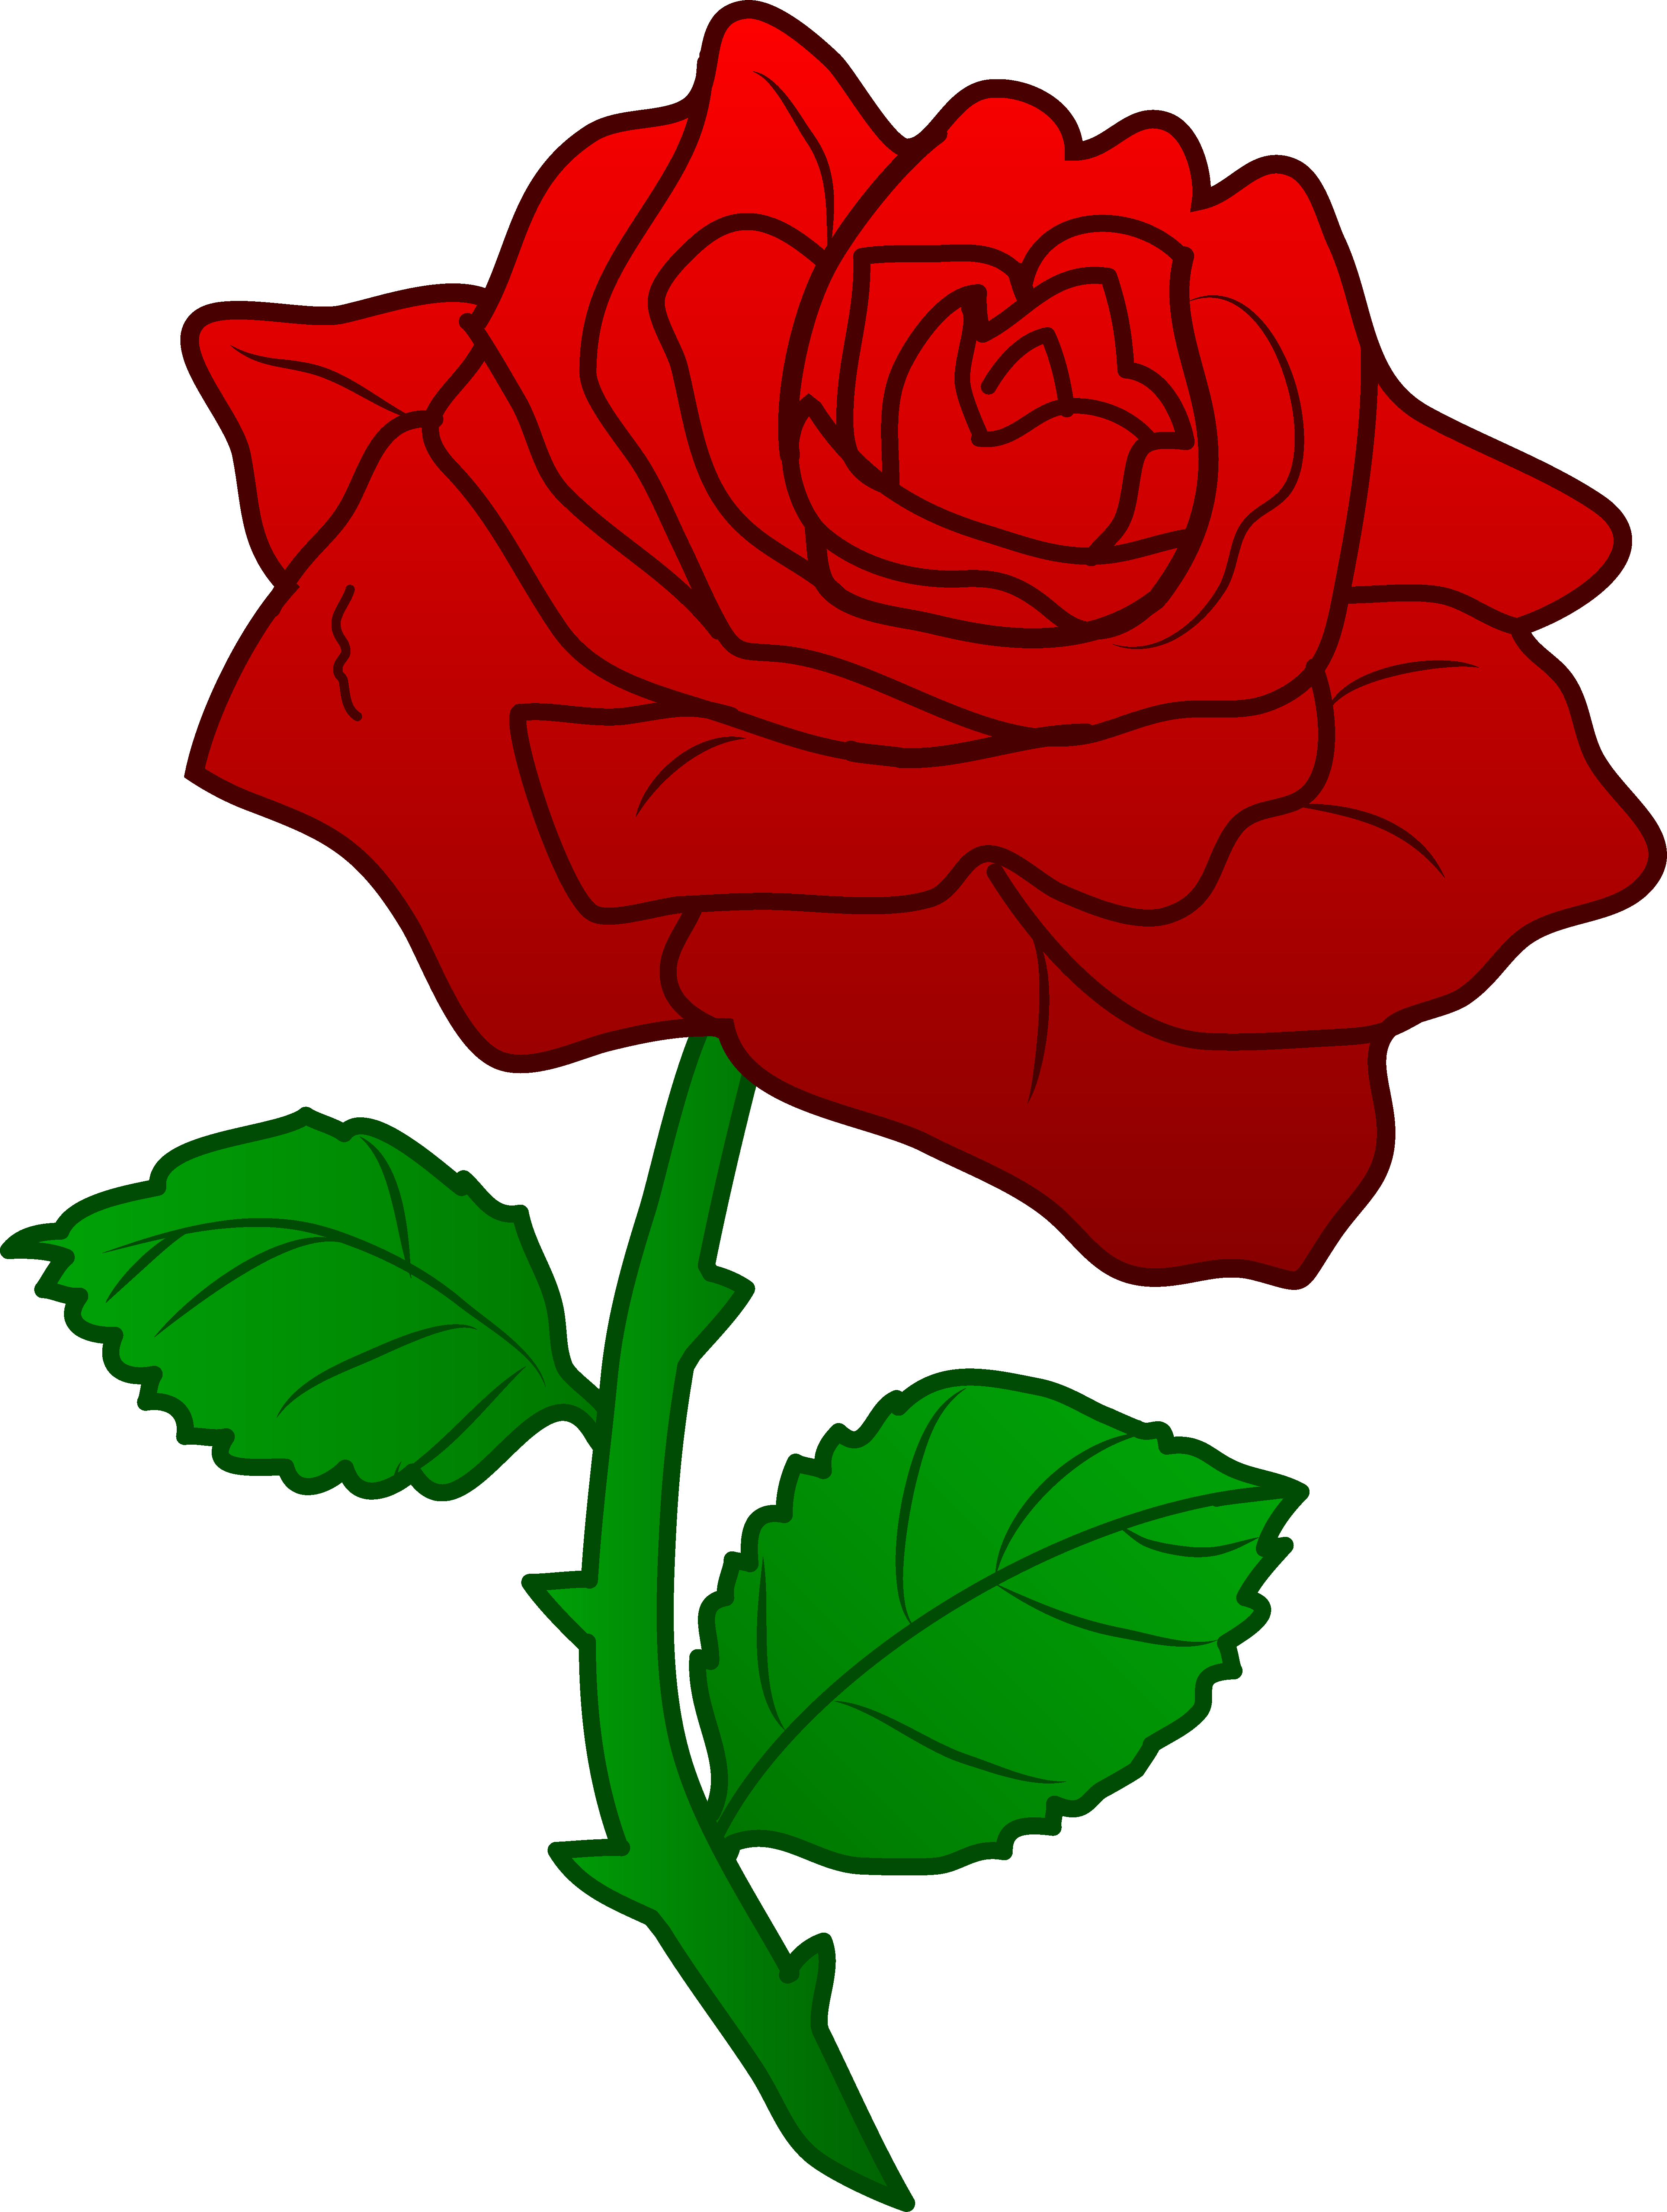 White Rose clipart thorn clipart Rose Rose Red #19 Rose